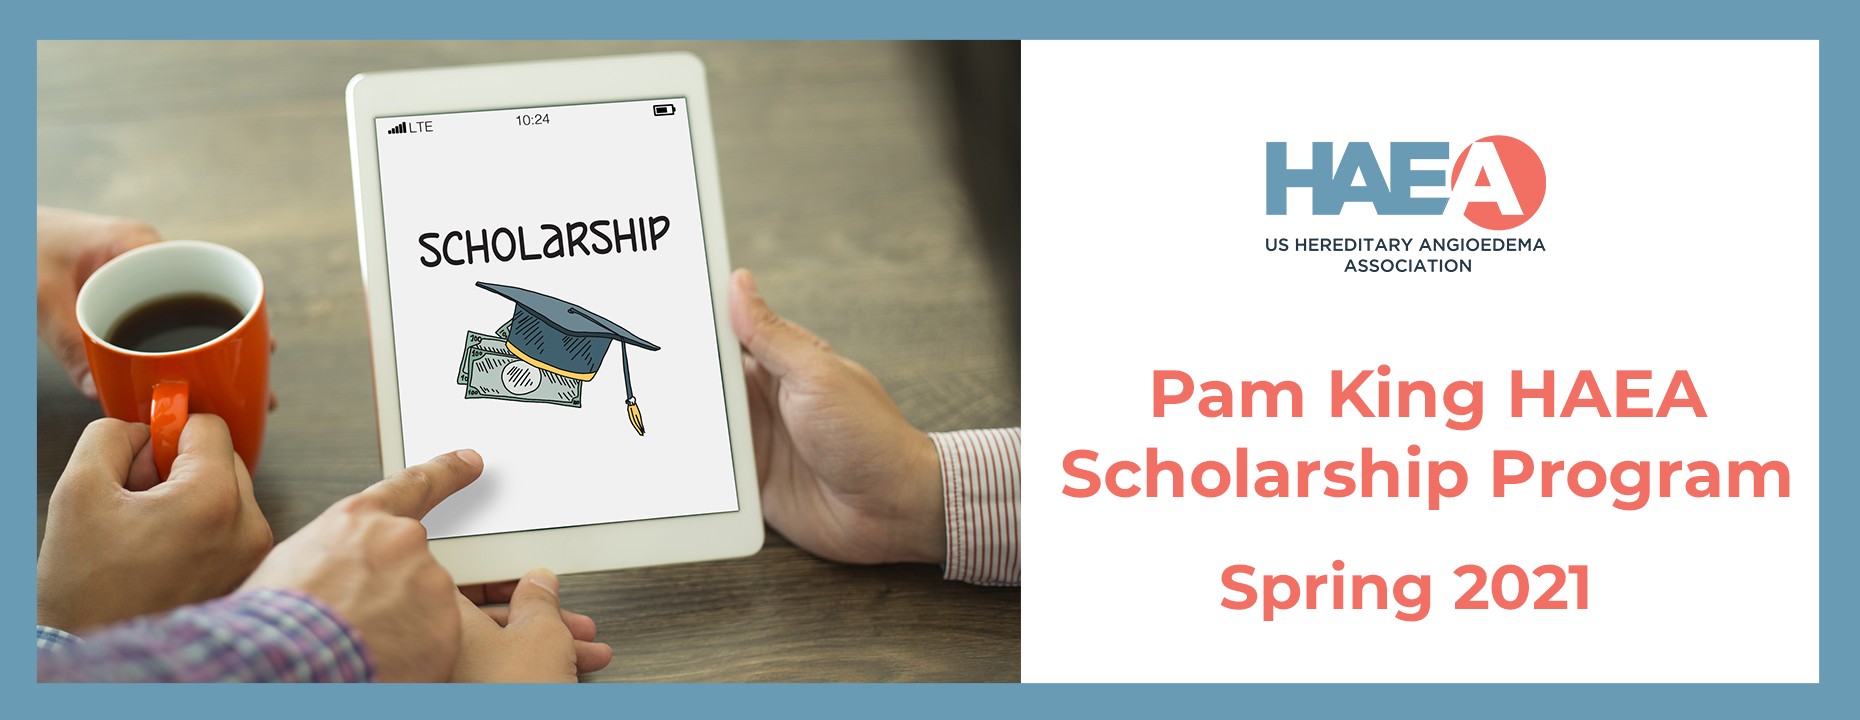 Pam King HAEA Scholarship Program